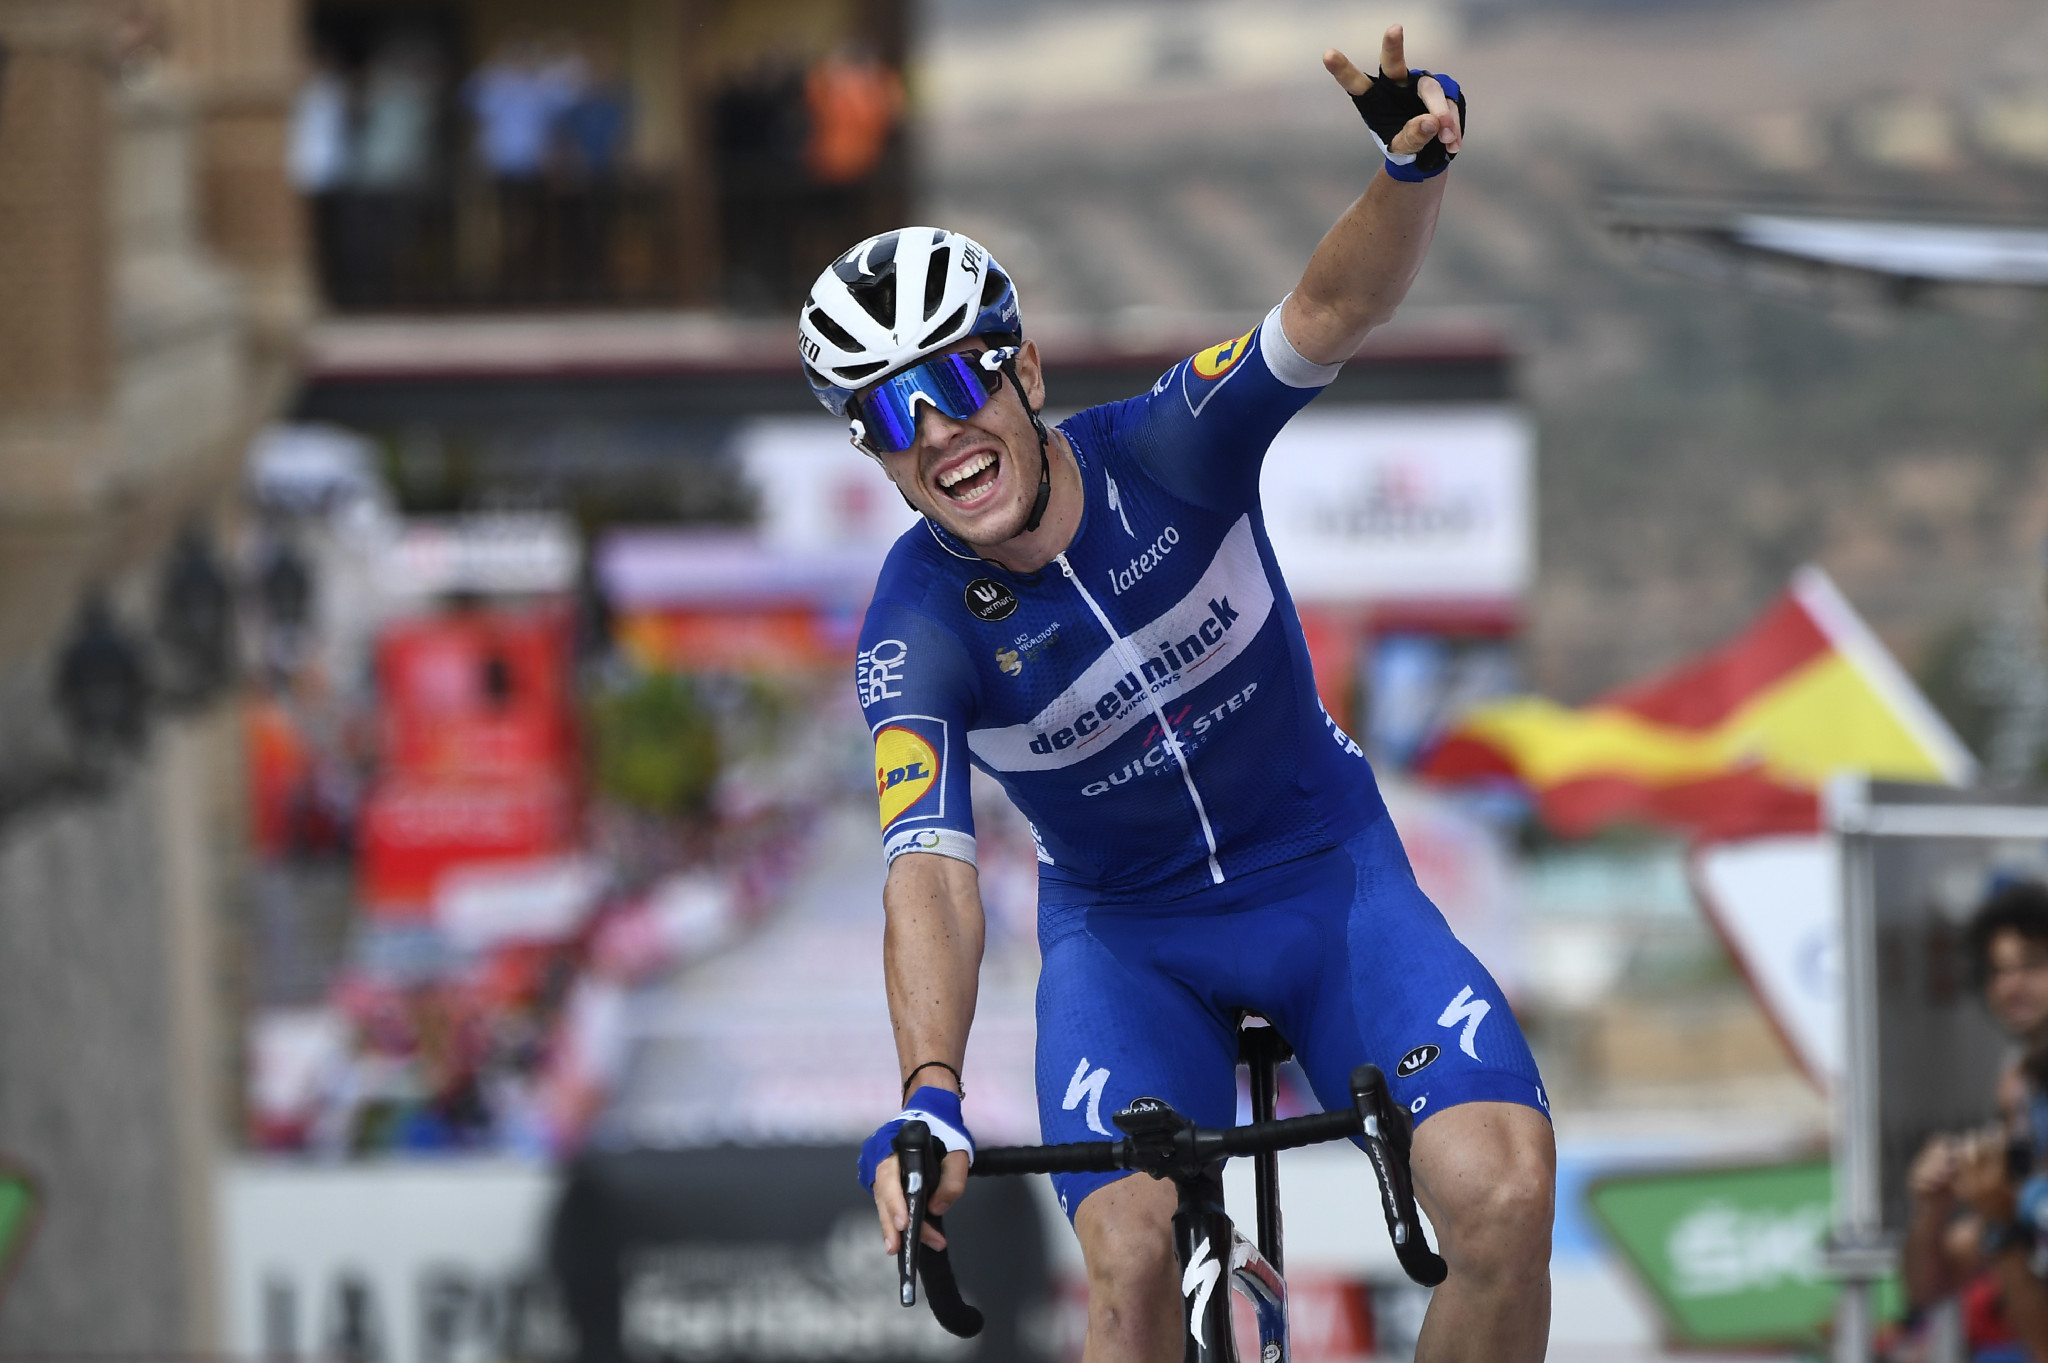 Cavagna wins controversial 19th stage at Vuelta a España